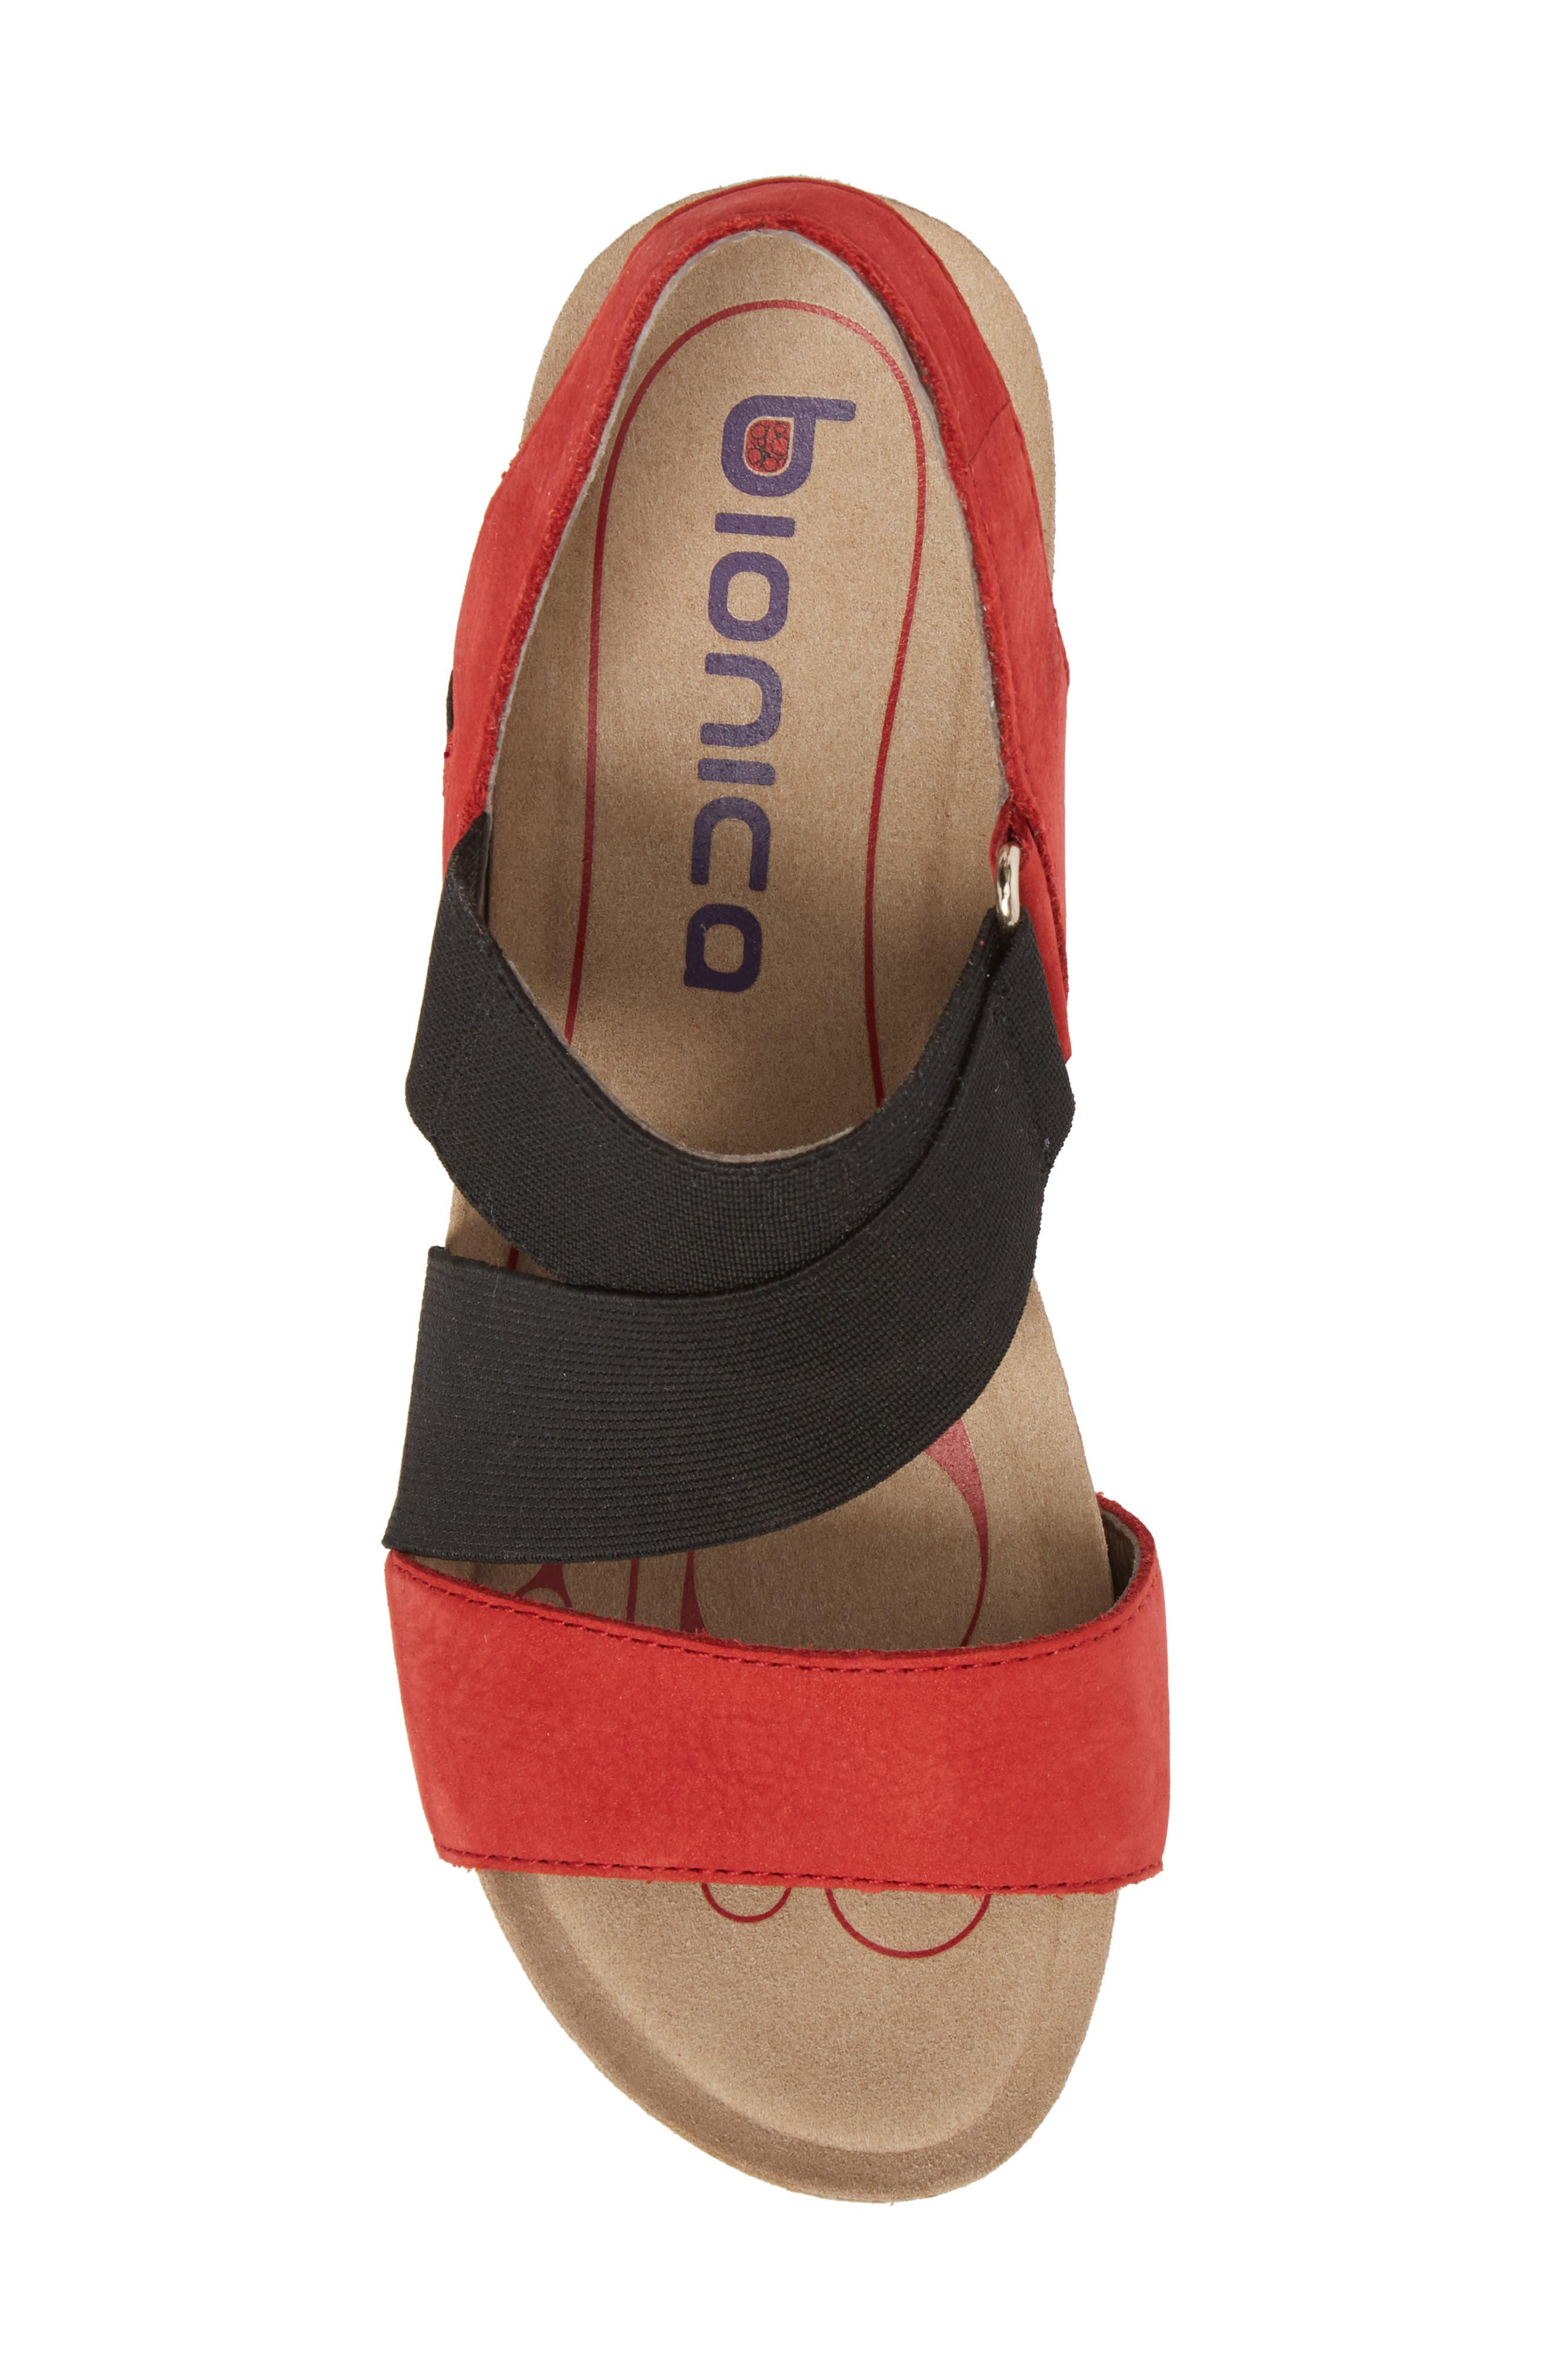 Paisley Wedge Sandal,                             Alternate thumbnail 5, color,                             Coral Leather